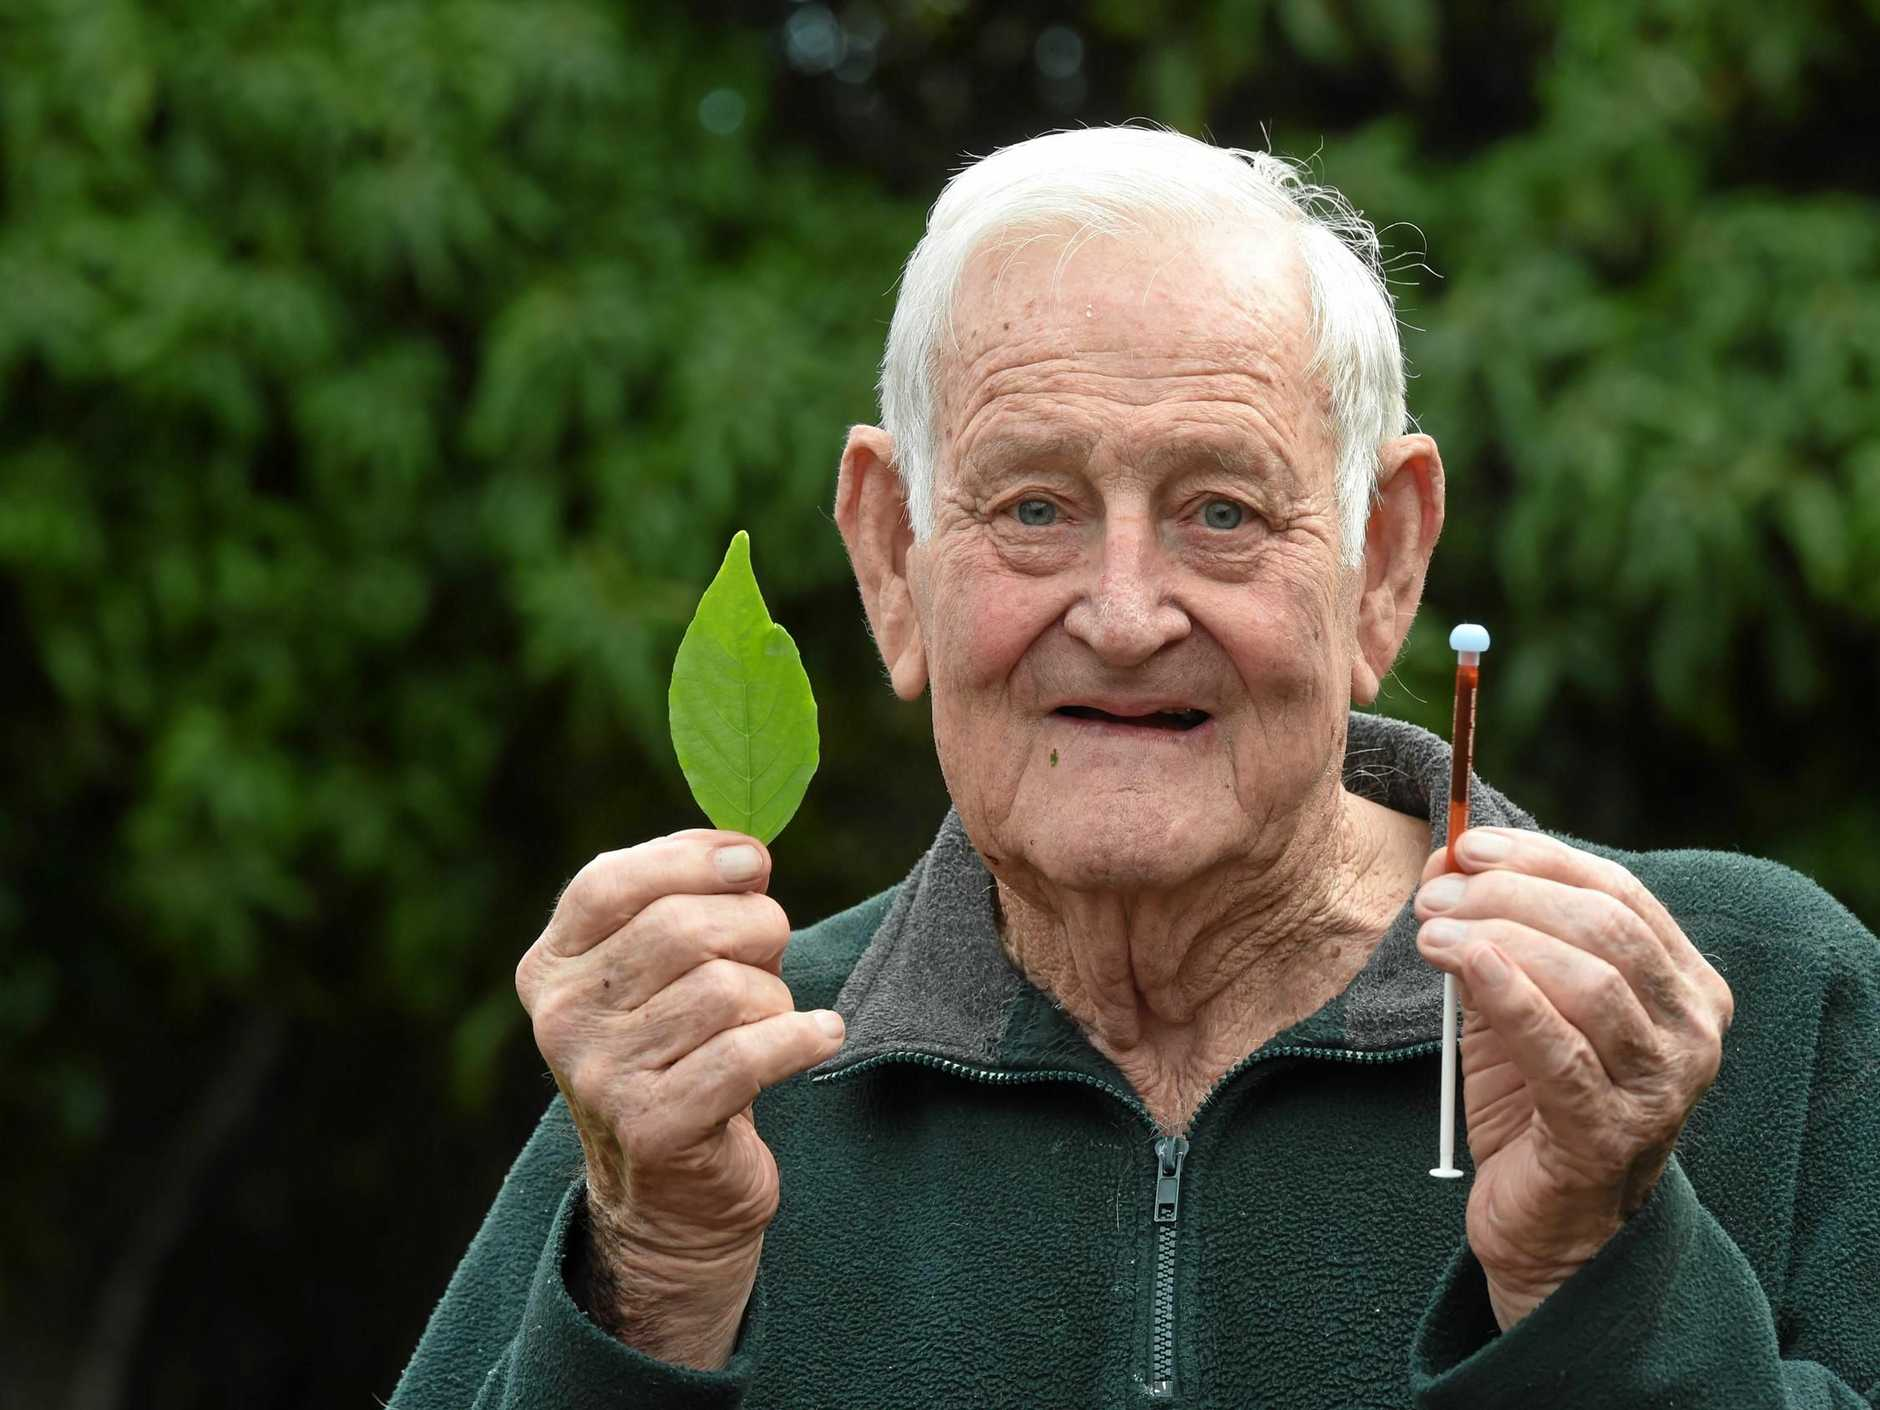 Ballina resident Don Ellison believes he was able to cure his diabetes with a plant he found in Thailand by eating the roots and leaves.